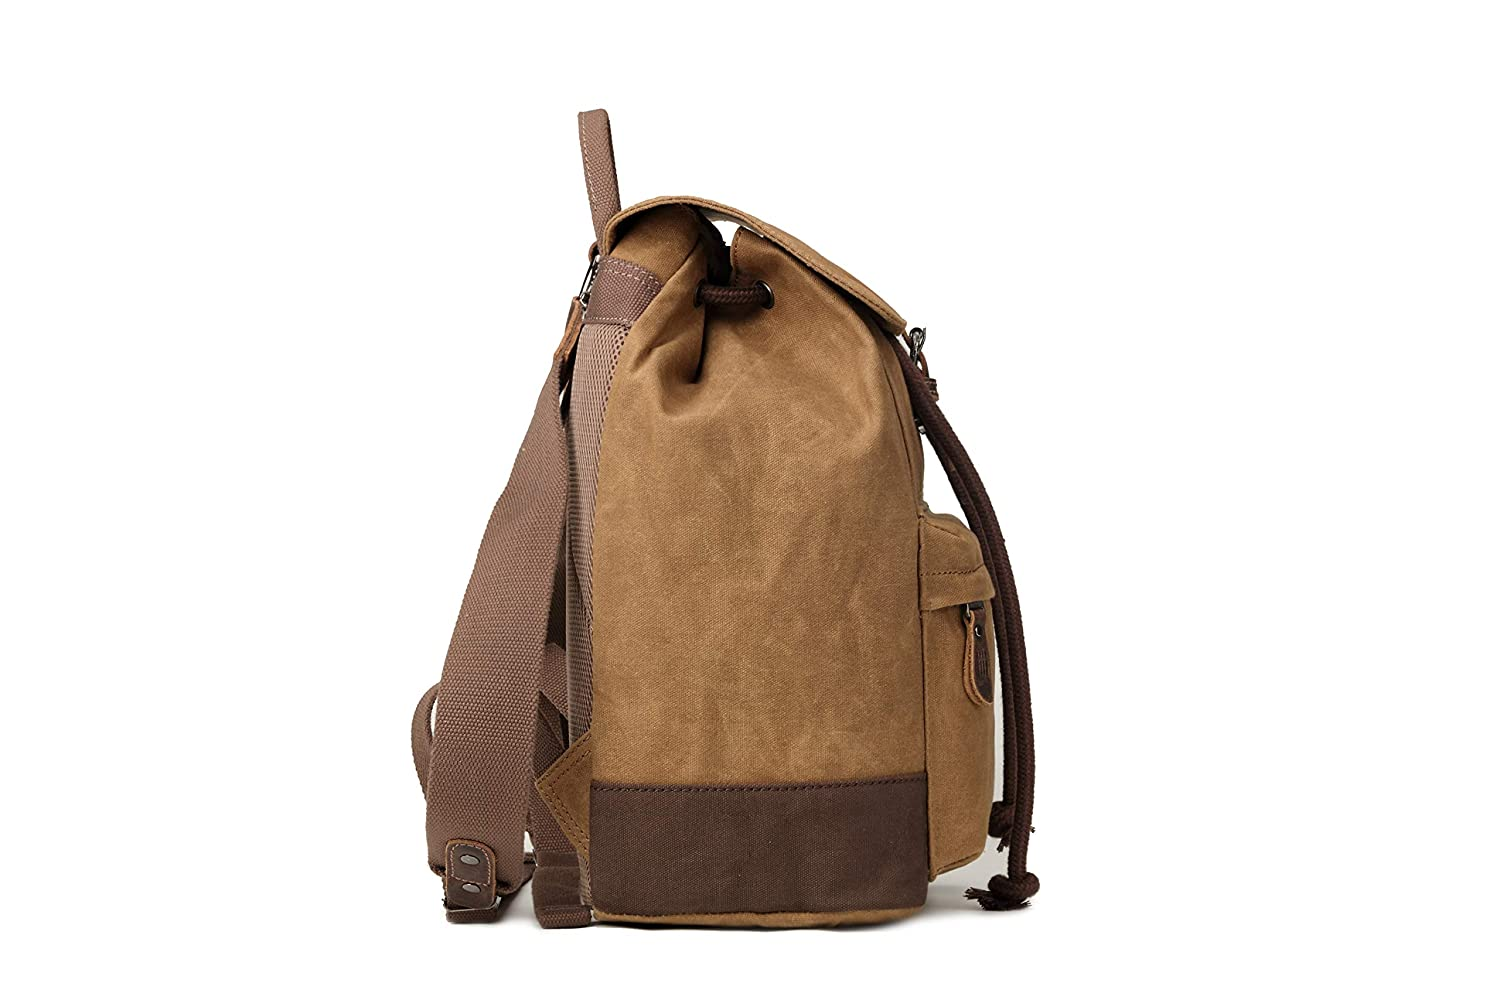 Troop London Heritage Canvas Leather Backpack Tablet Friendly Backpack TRP0442 Canvas Leather Smart Casual Daypack Camel